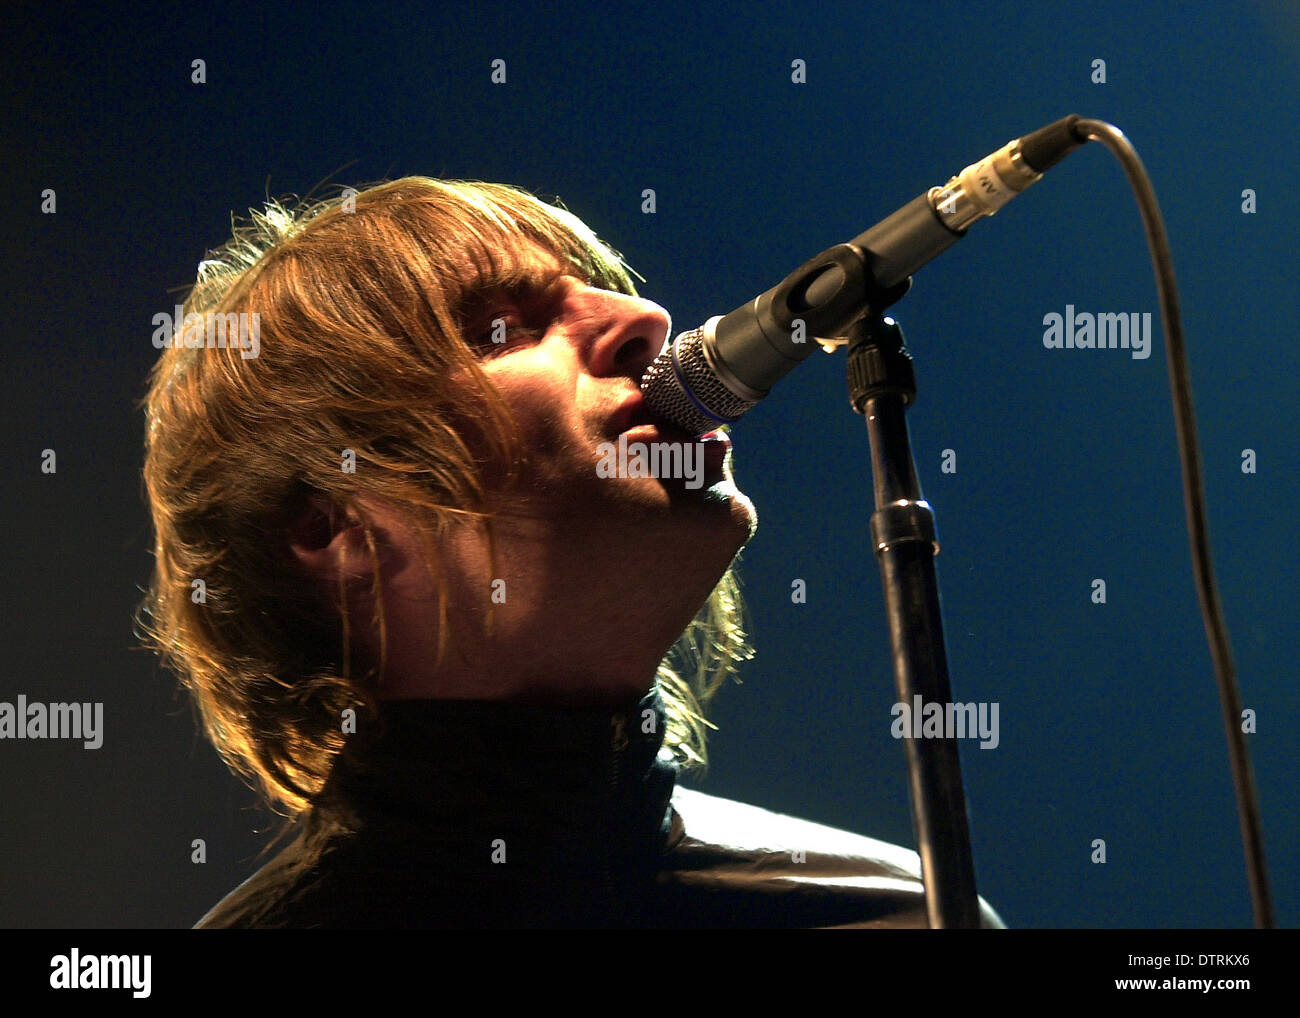 Oasis frontman Liam Gallagher 18/12/02 - Stock Image